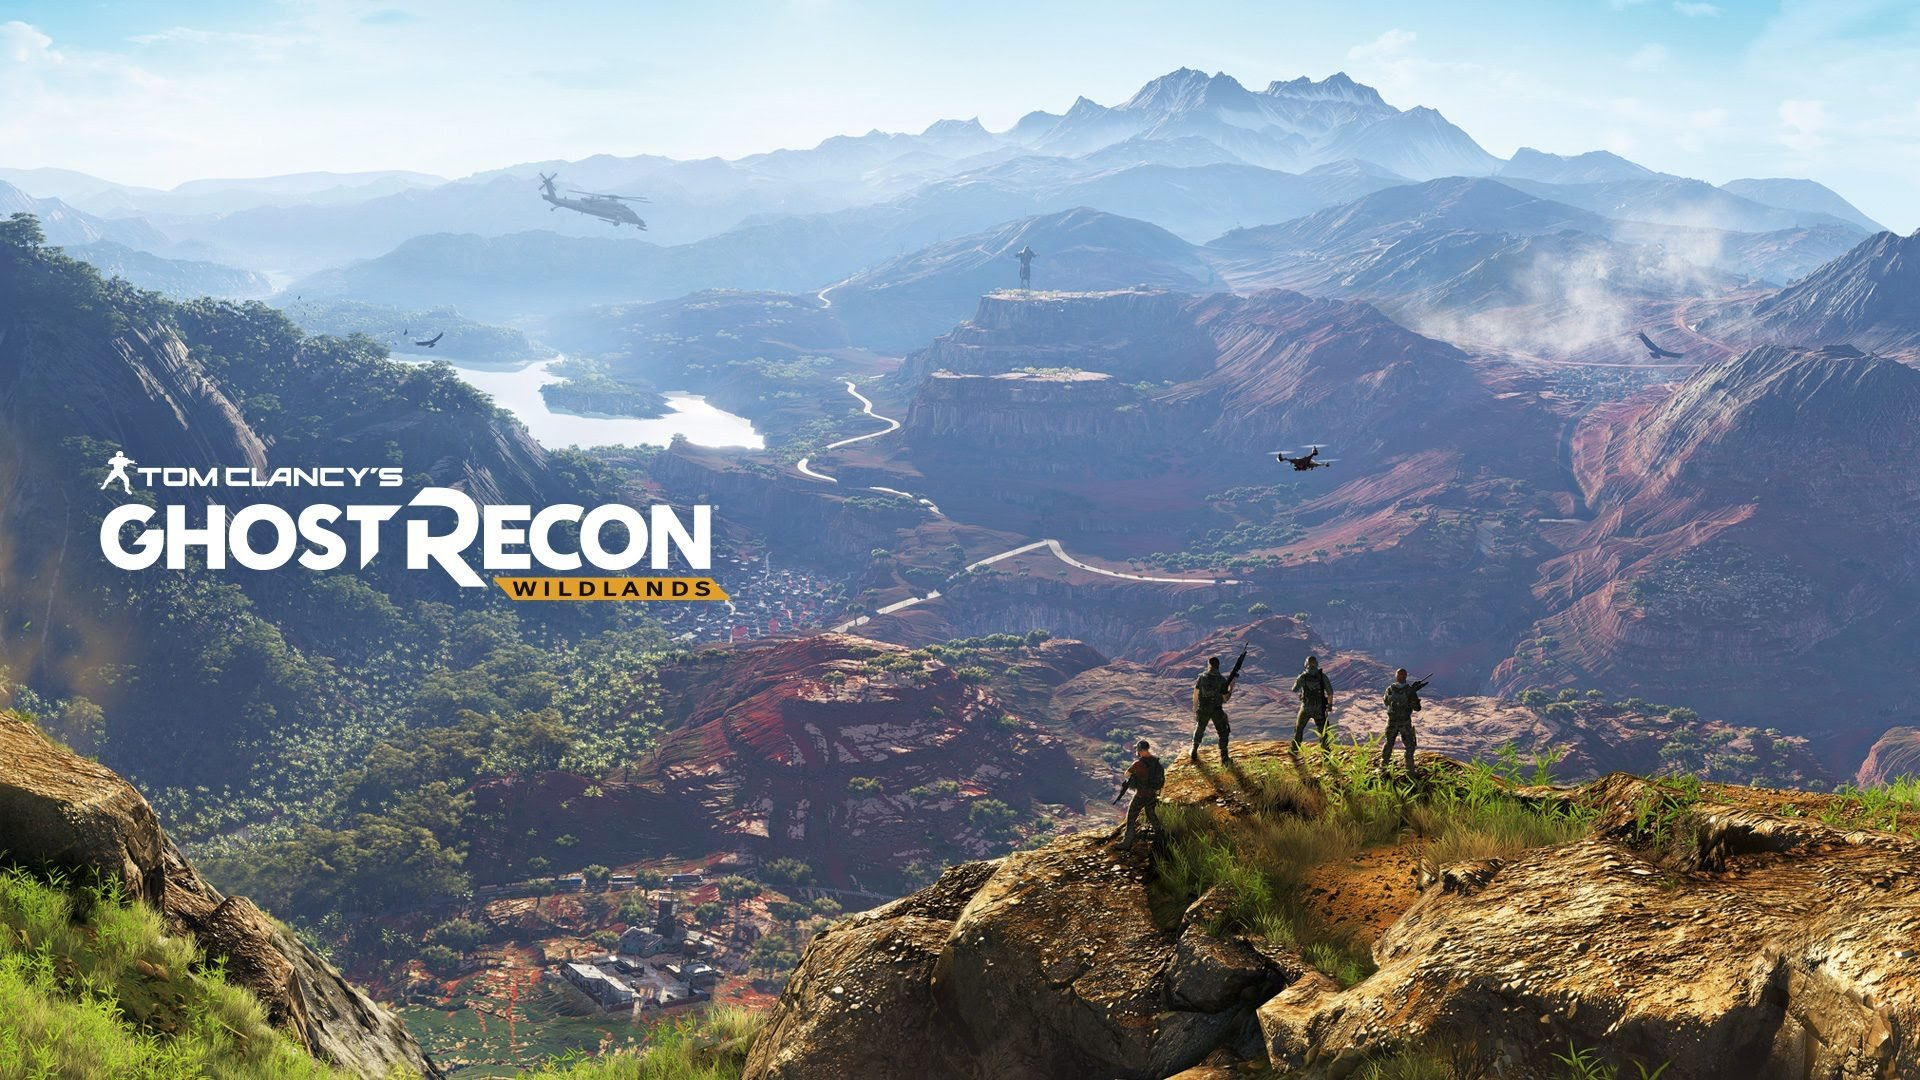 GHOST RECON WILDLANDS Military Shooter Action Fighting